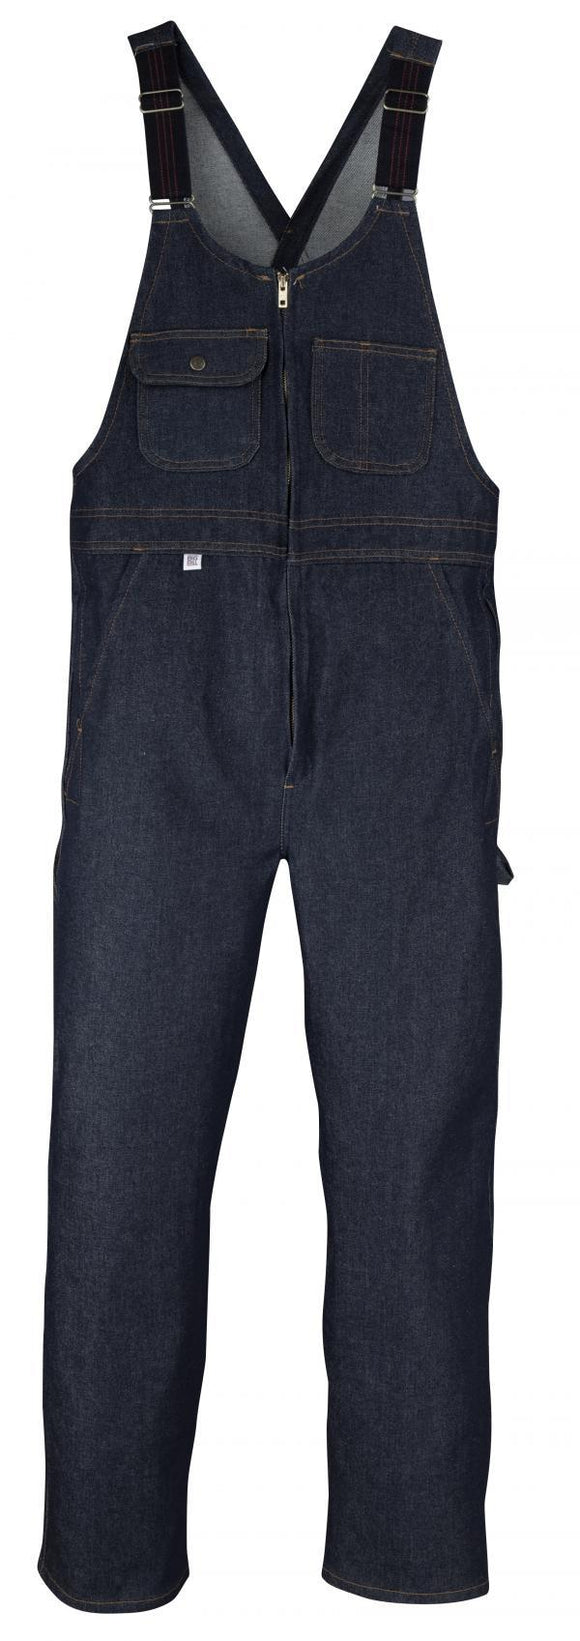 Big Bill 92 Denim Bib Overall with Zip Front Closure